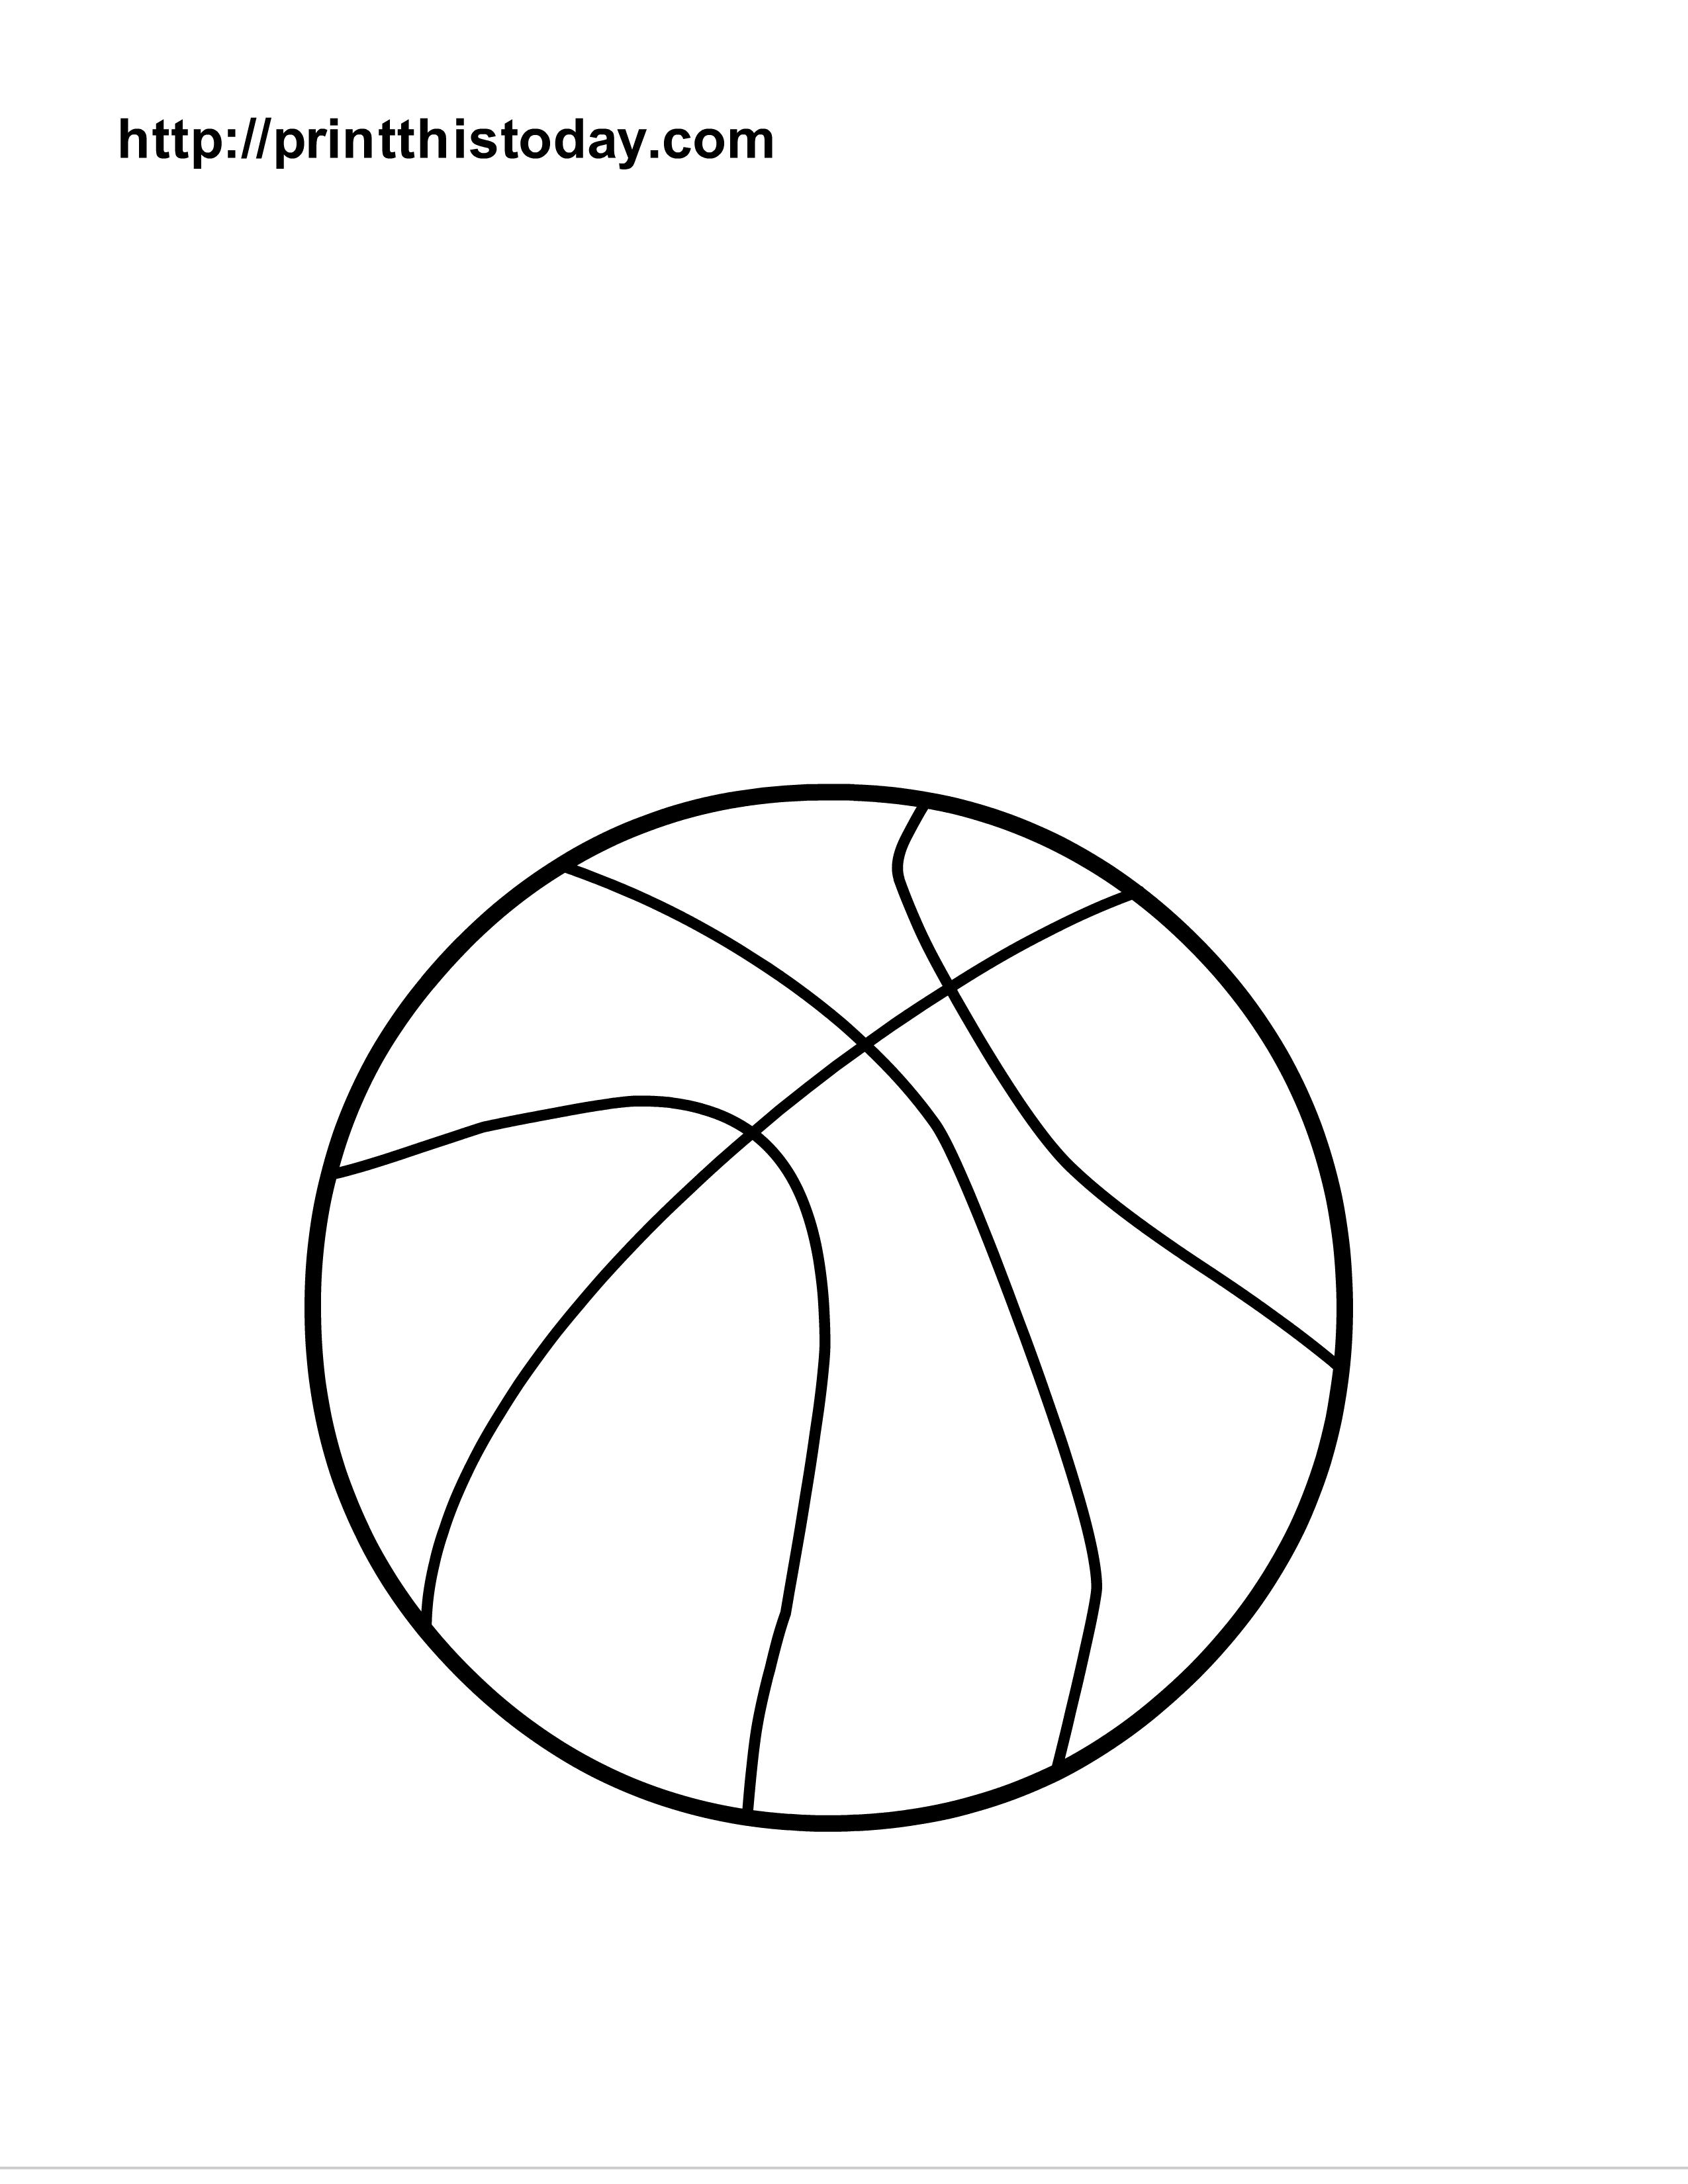 tennis ball coloring page royalty free drawing of a funny tennis clip art vector coloring tennis page ball